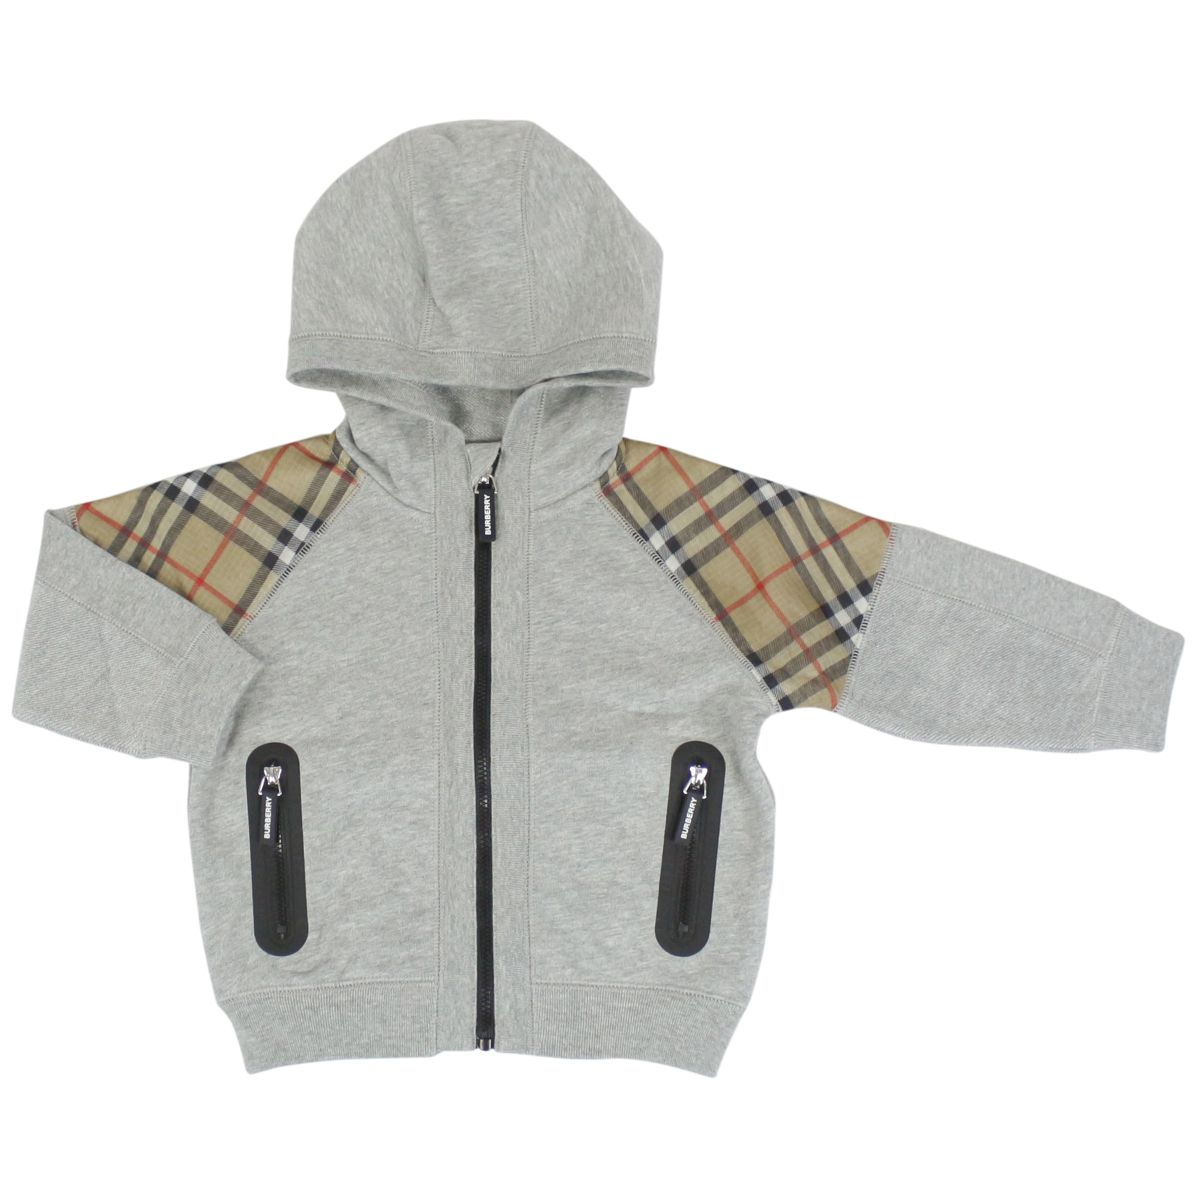 Zip hoodie and check details Melange gray Burberry